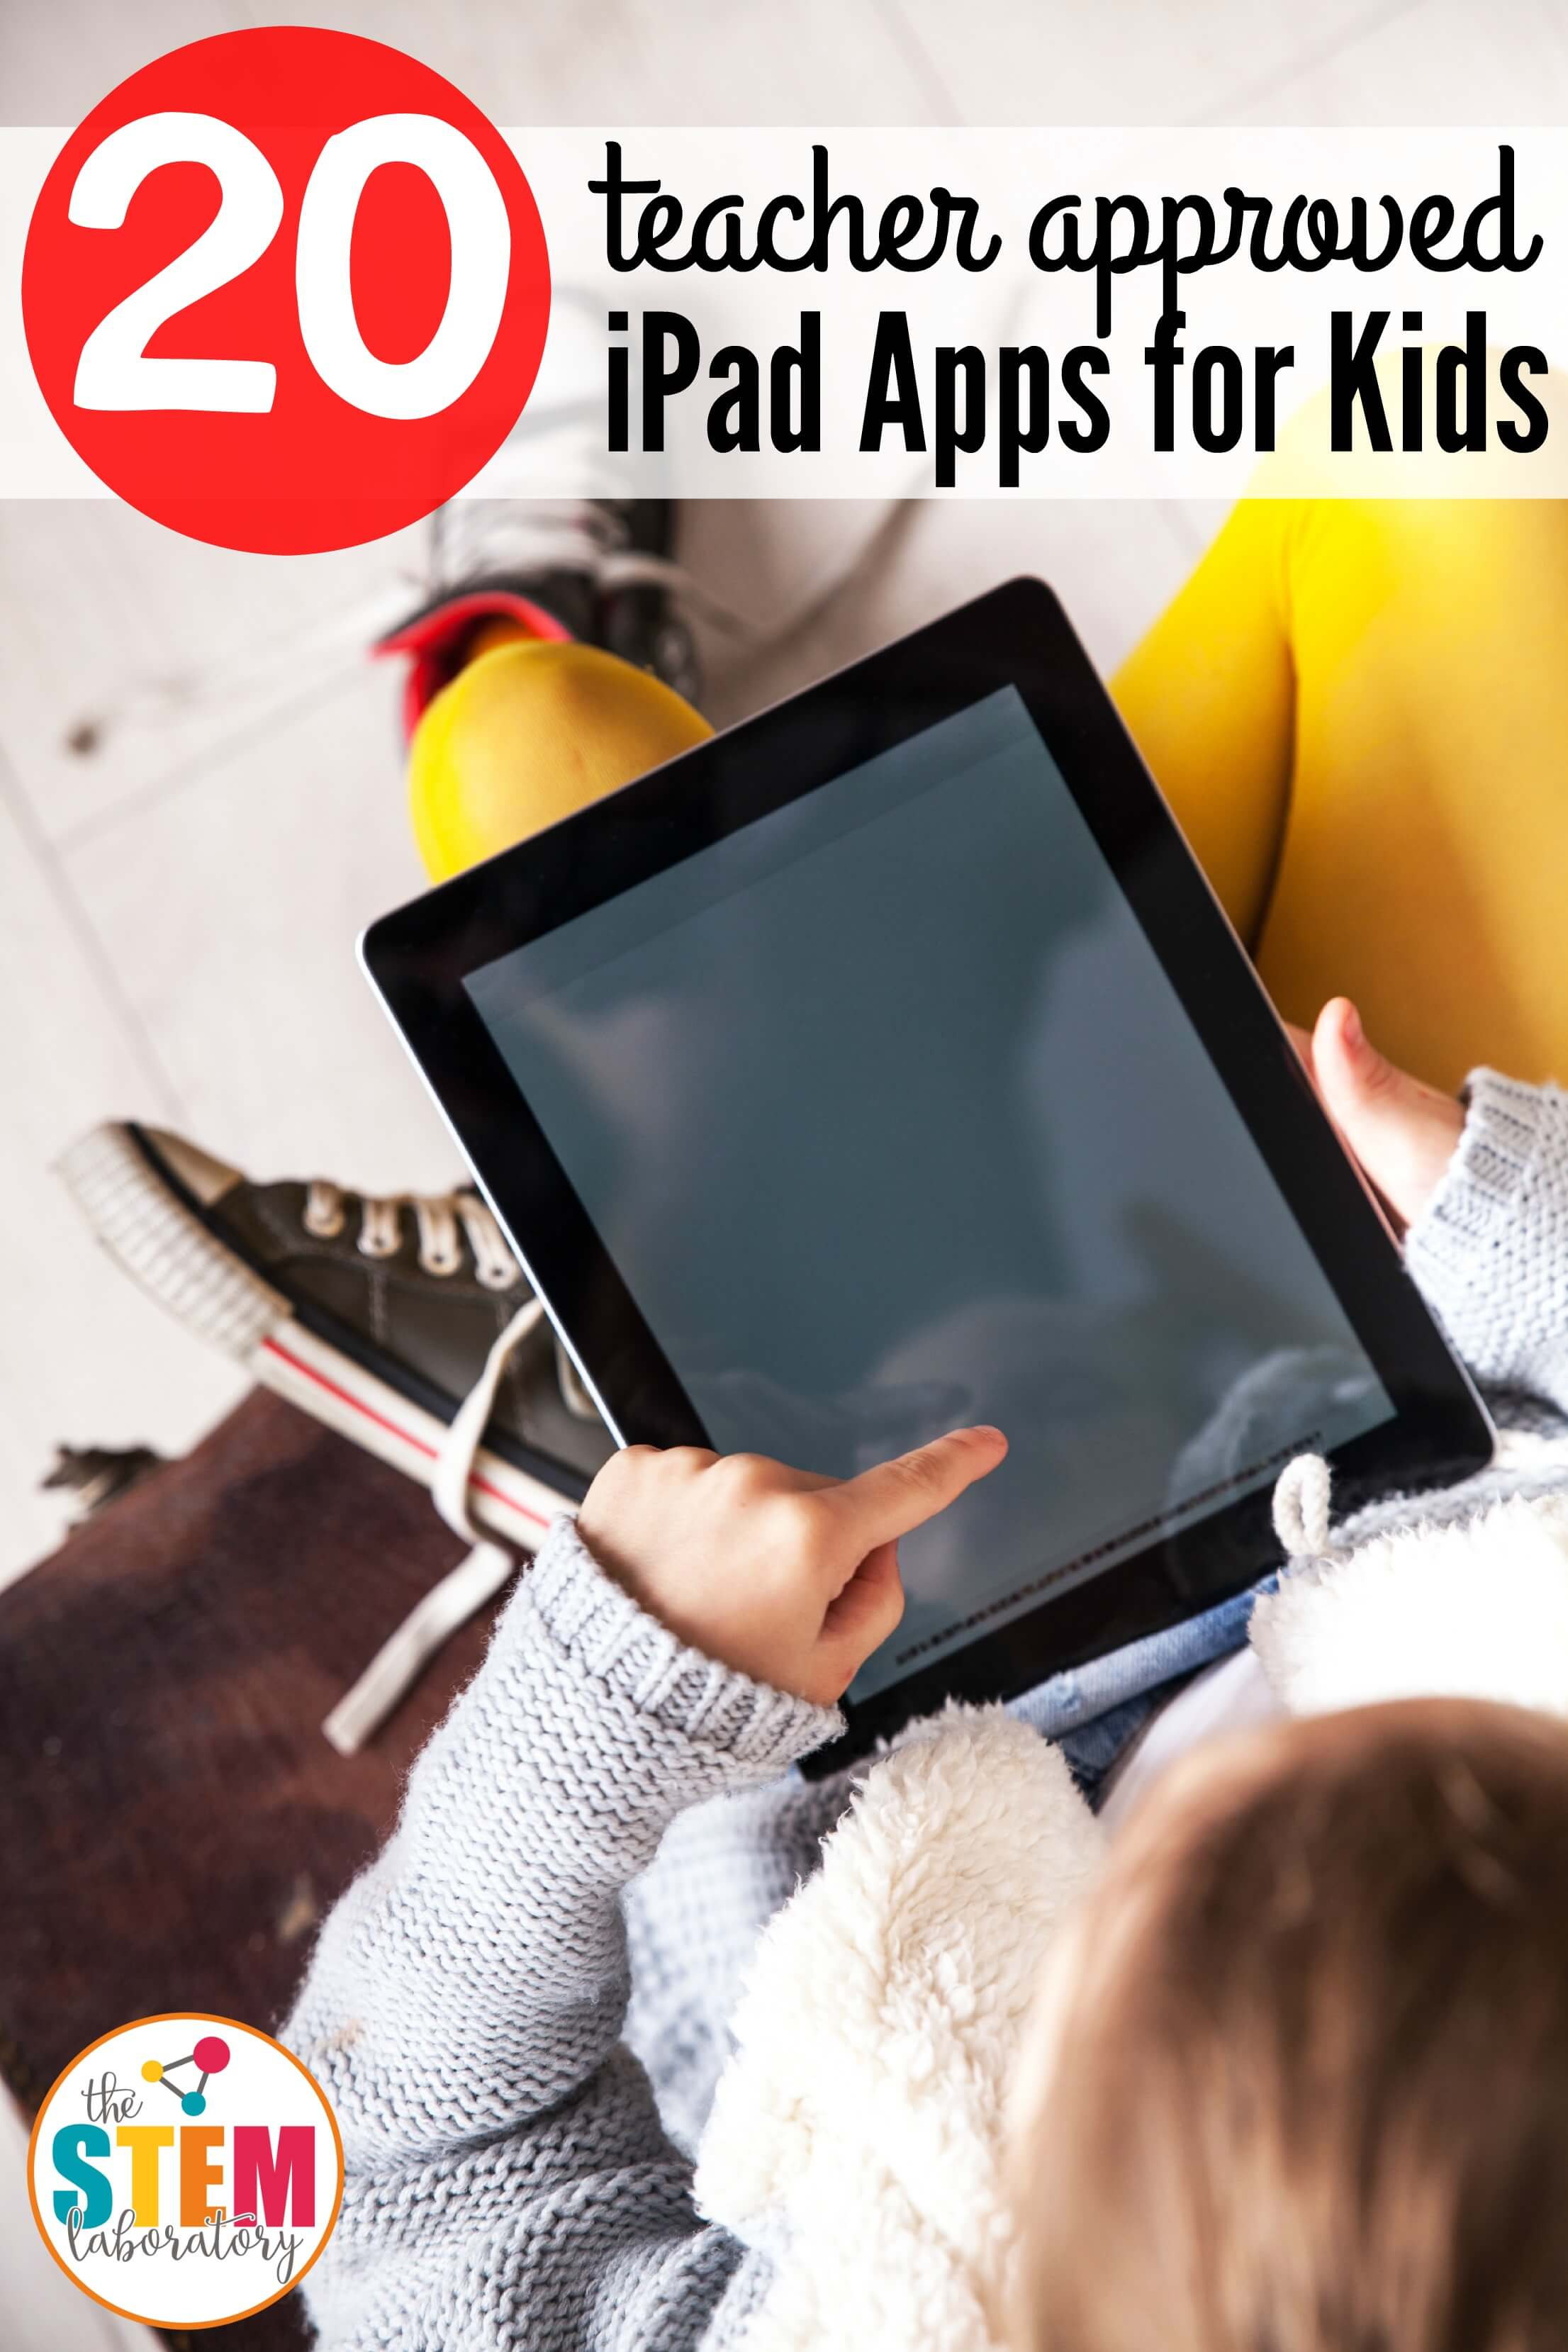 20 Teacher Approved iPad Apps for Kids - The Stem Laboratory